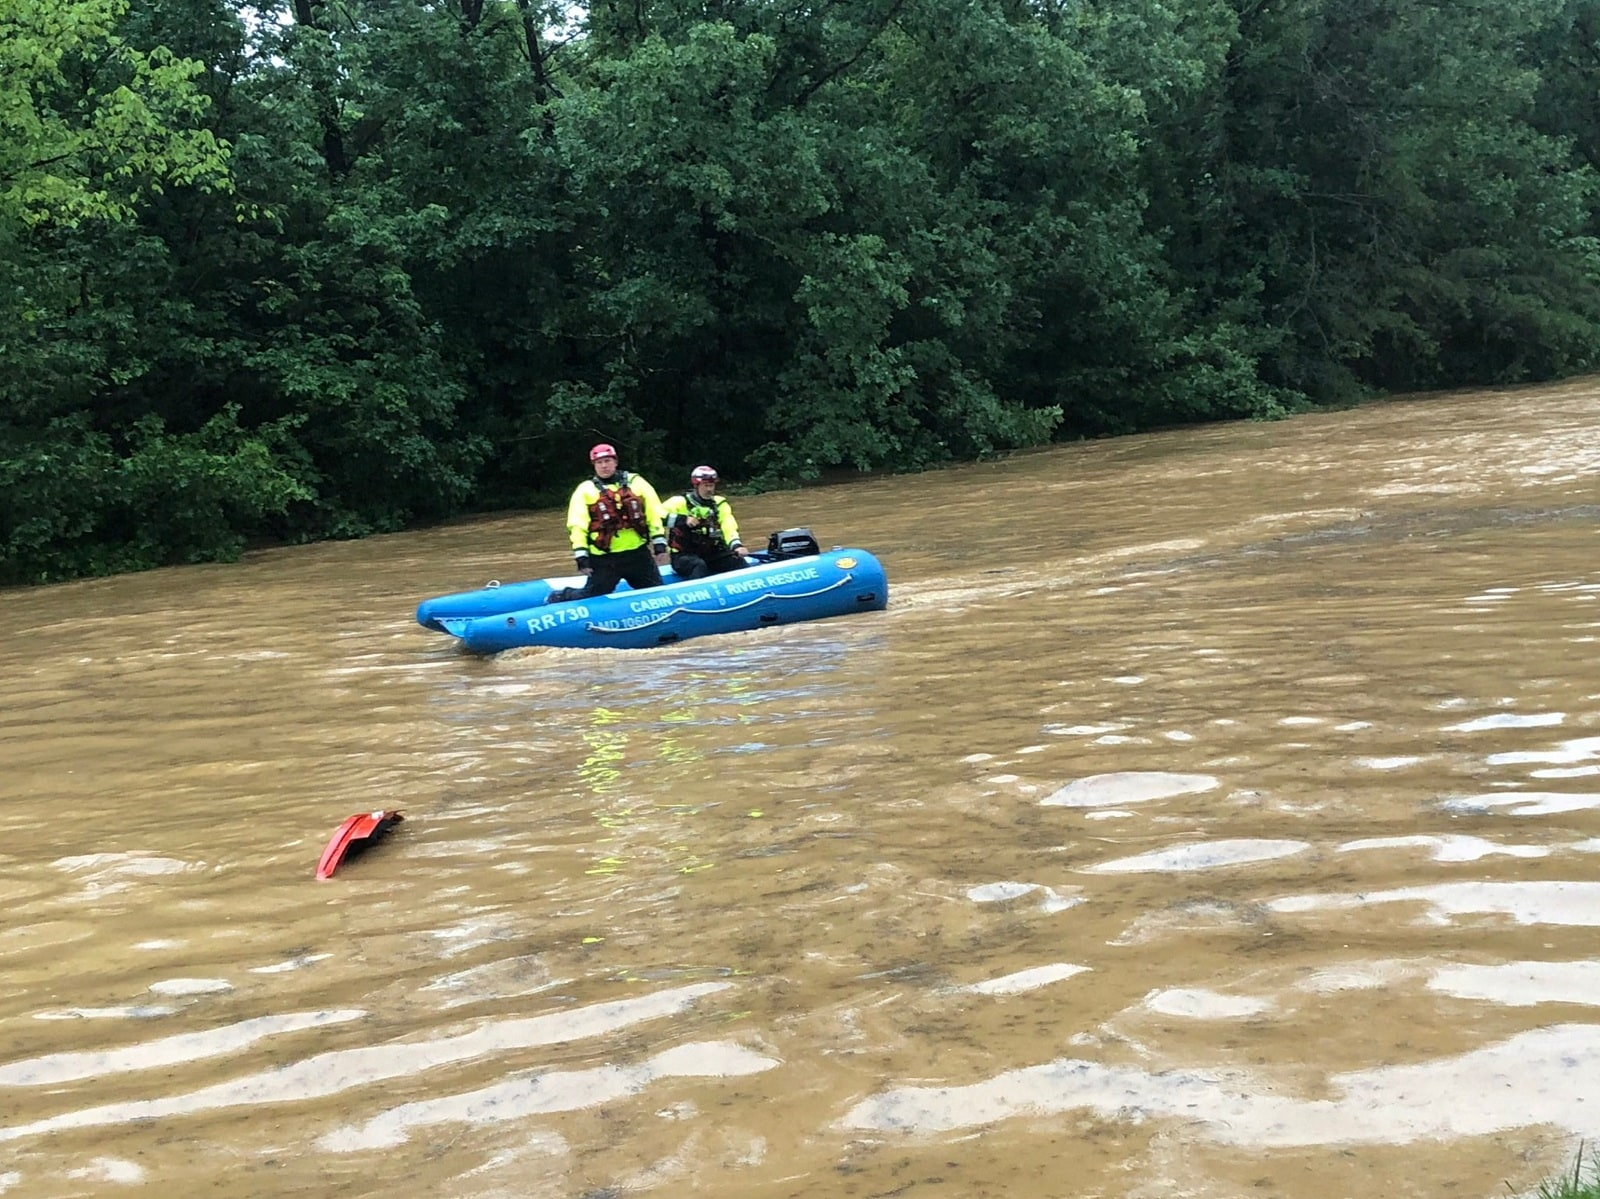 Crew of a water rescue vessel is seen in flood waters on Clara Barton Parkway near Washington, US., July 8, 2019 Twitter/Montgomery County (MD) Fire and Rescue/via REUTERS.